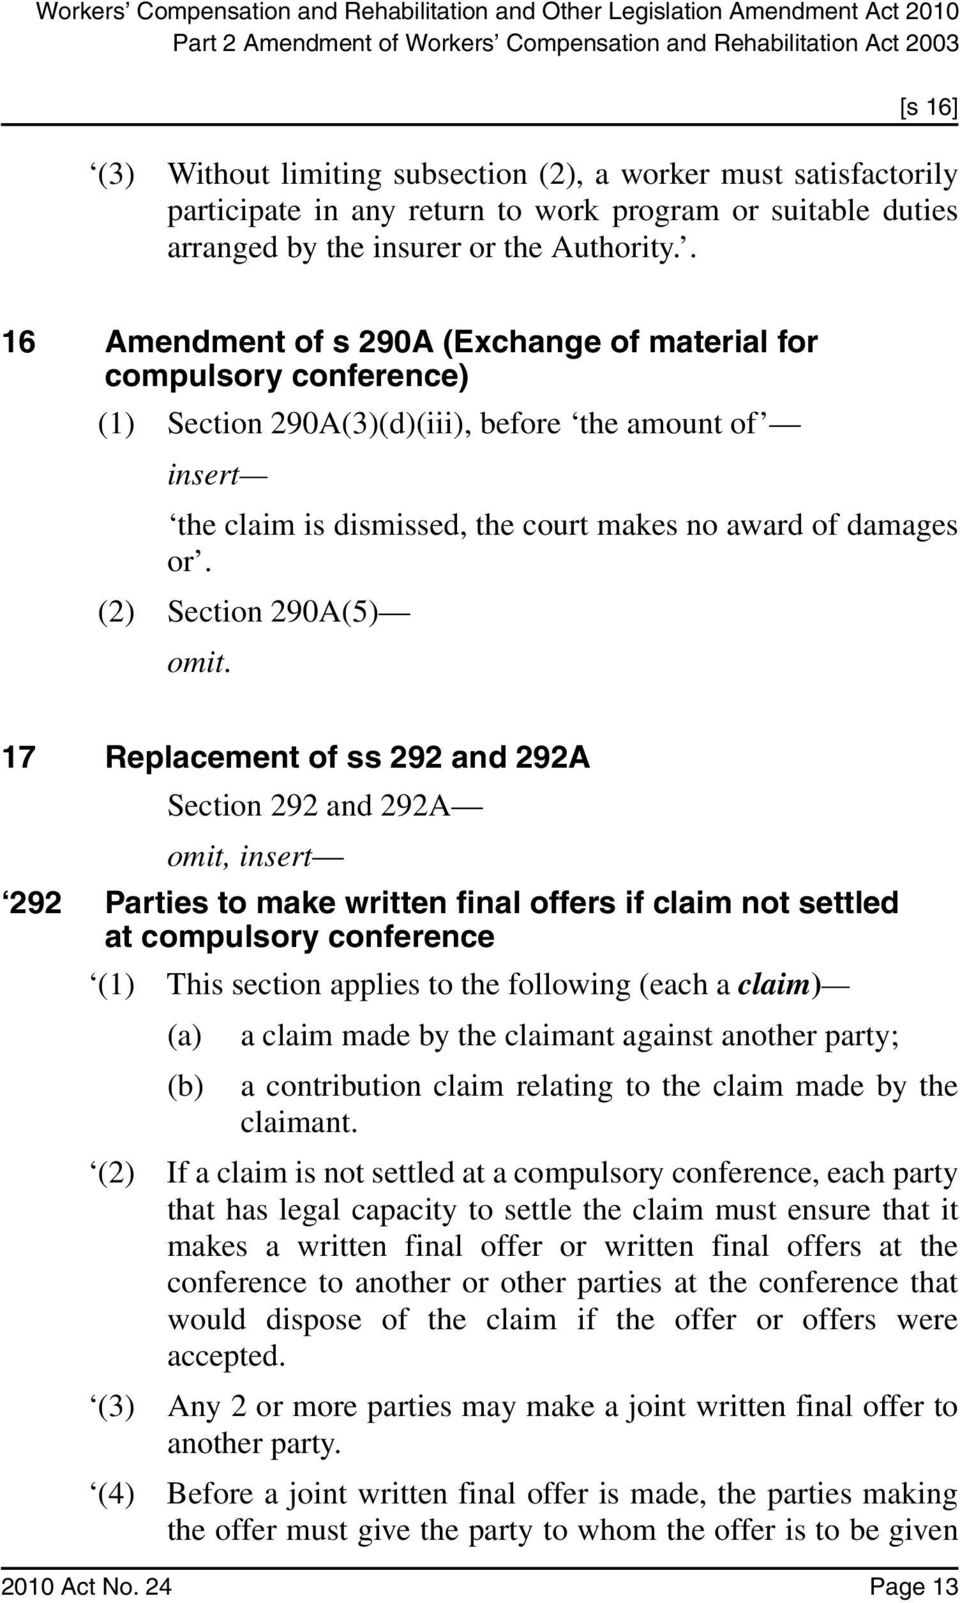 . 16 Amendment of s 290A (Exchange of material for compulsory conference) (1) Section 290A(3)(d)(iii), before the amount of insert the claim is dismissed, the court makes no award of damages or.